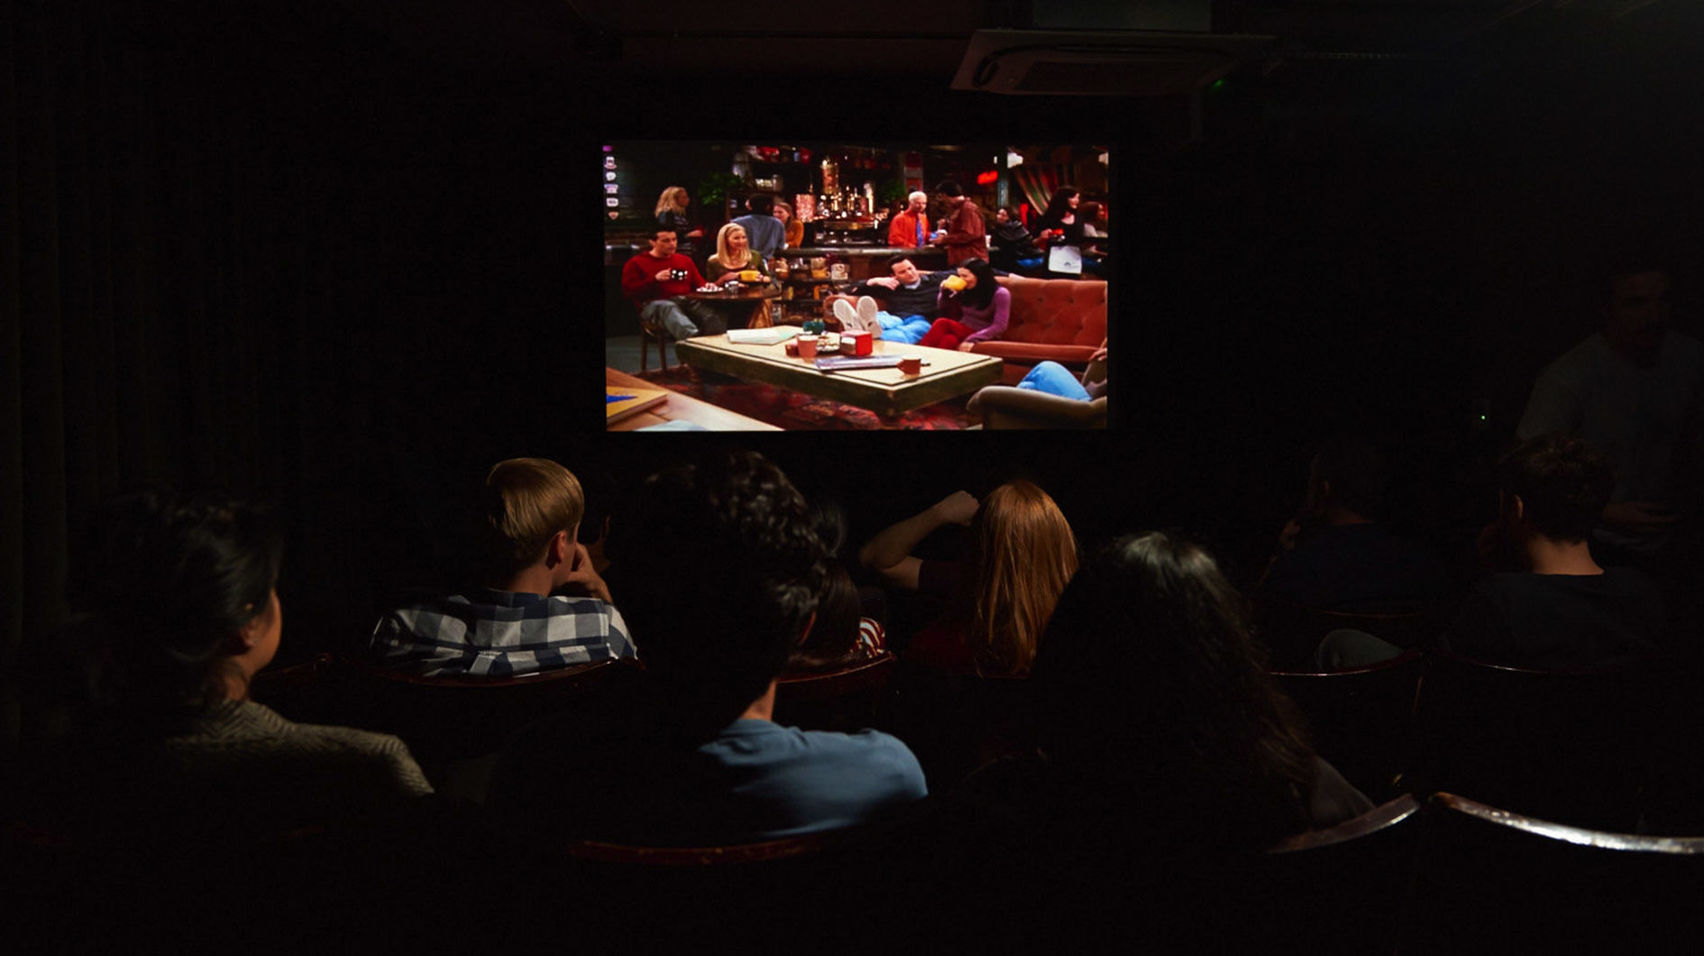 Rows of people watching Friends in a cinema